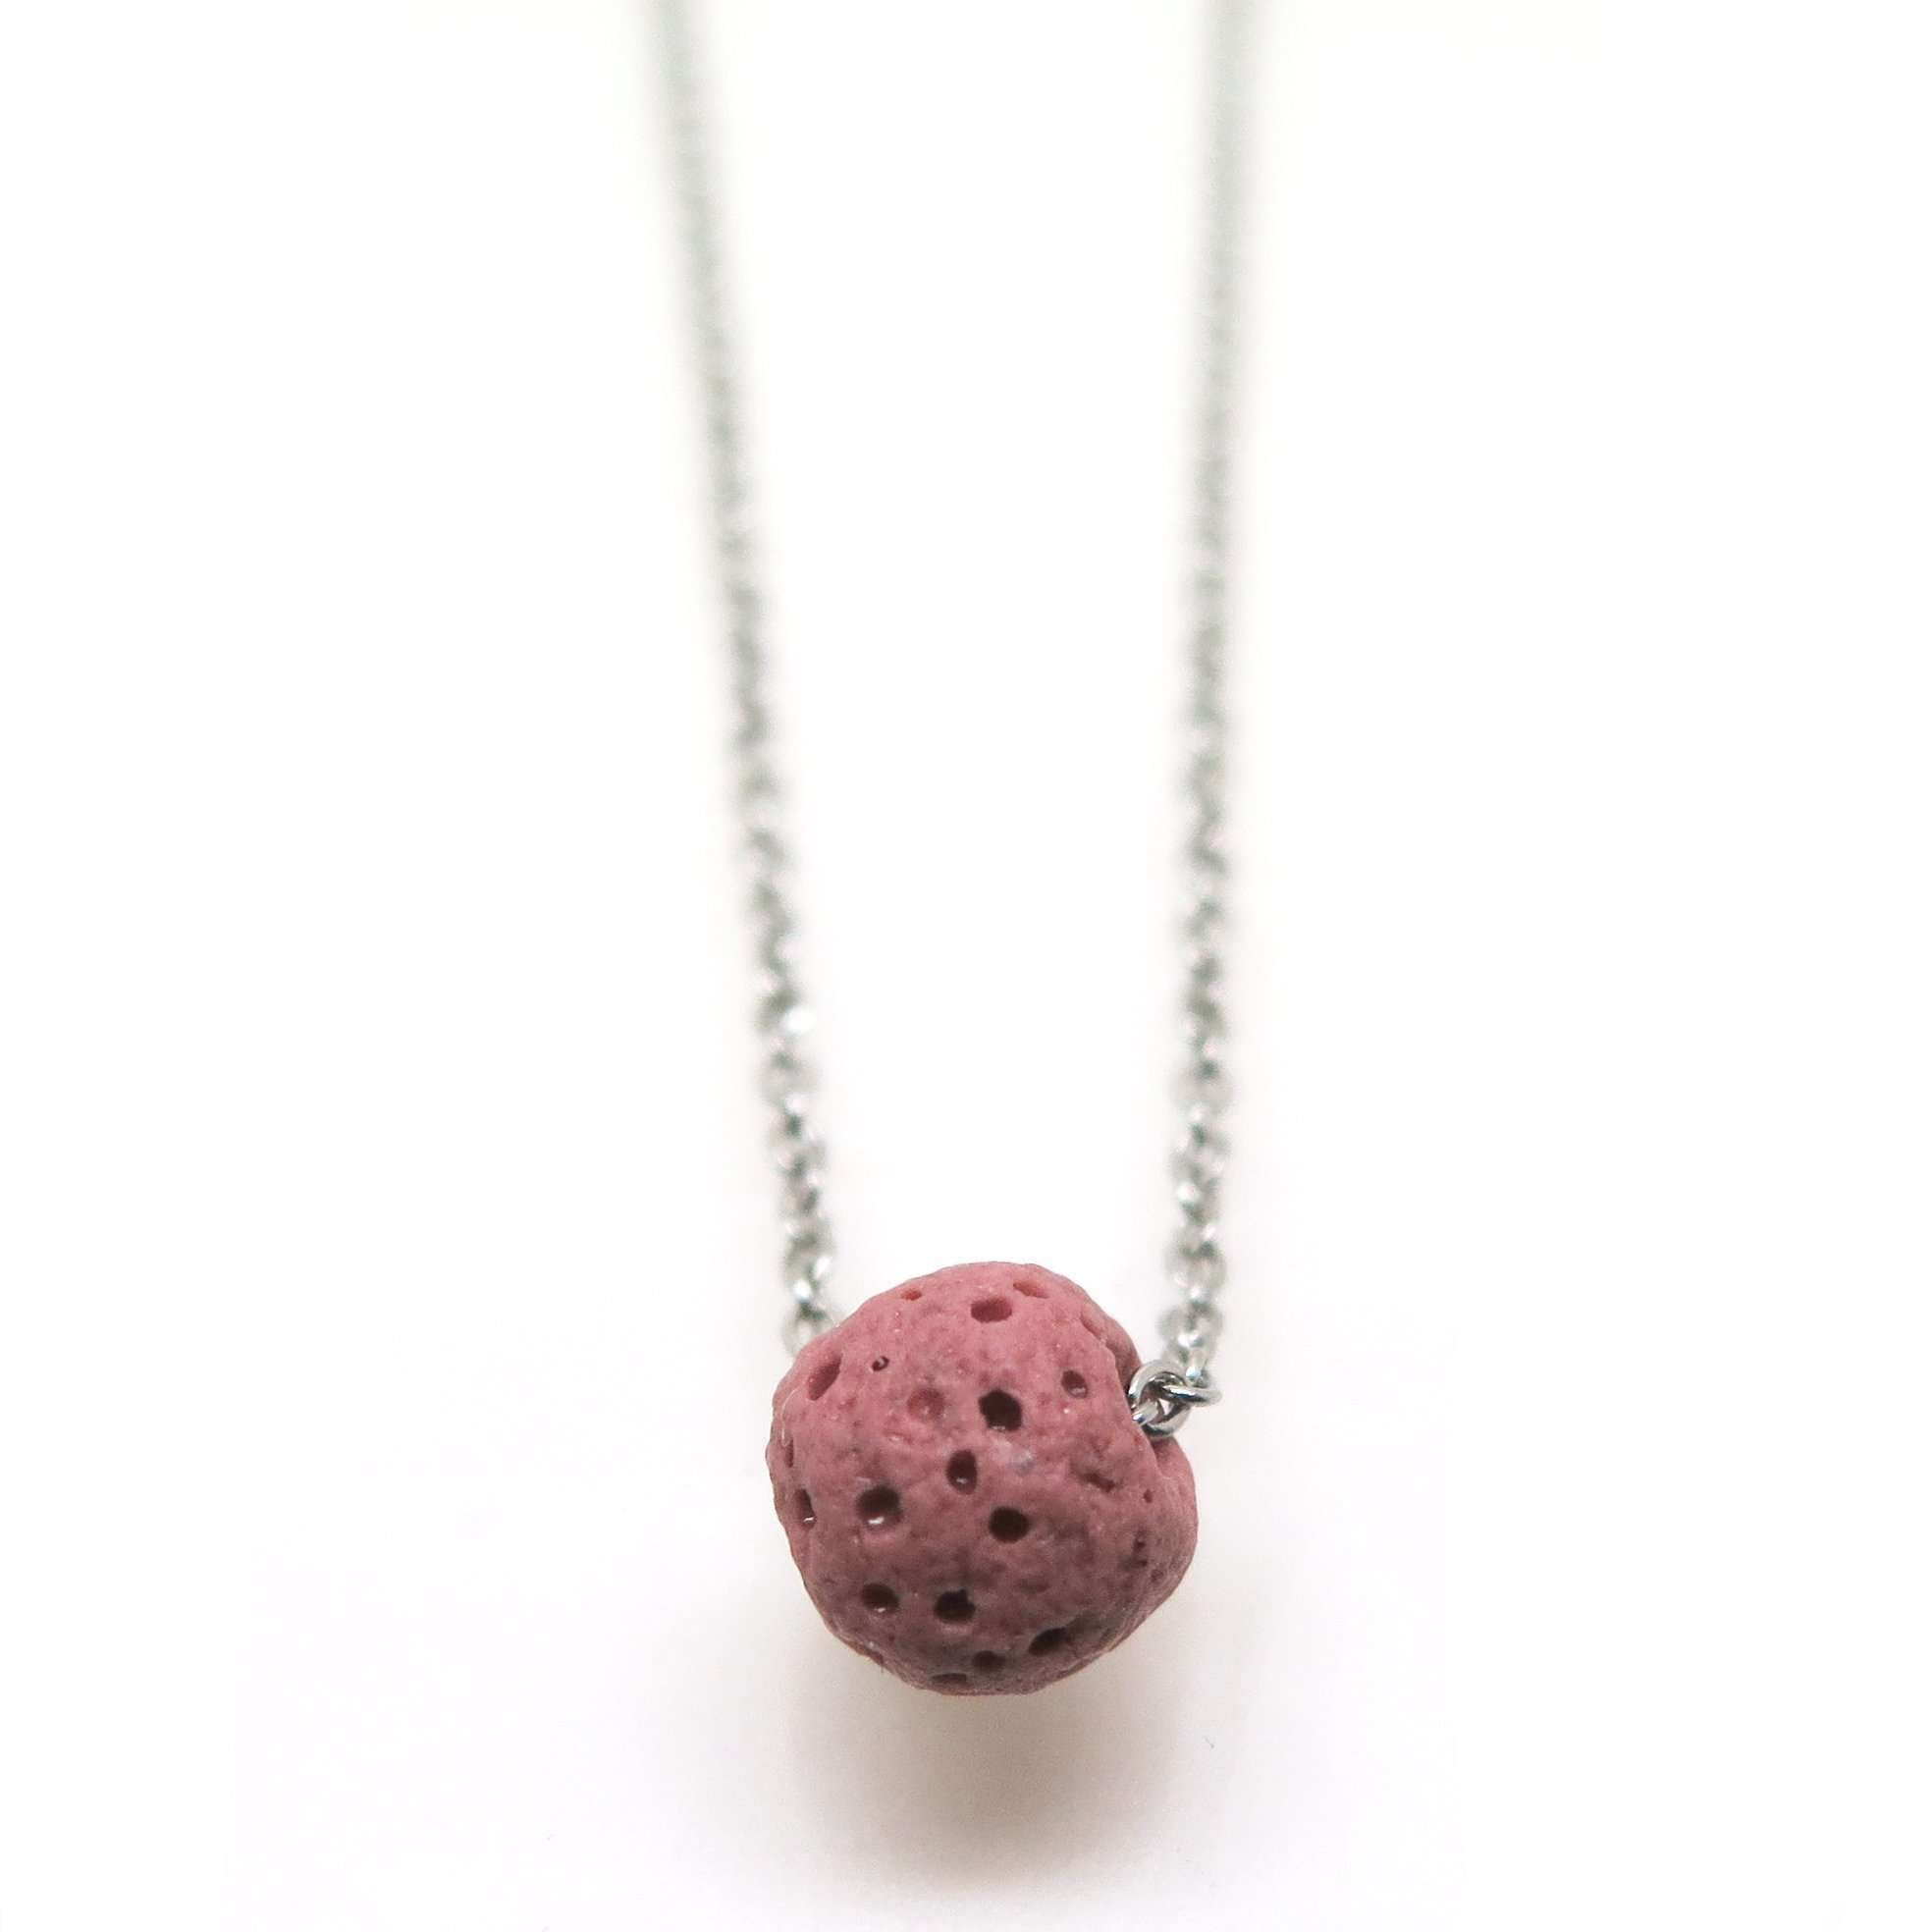 stone theta jewellery diffuser essential oil lava lave products necklace